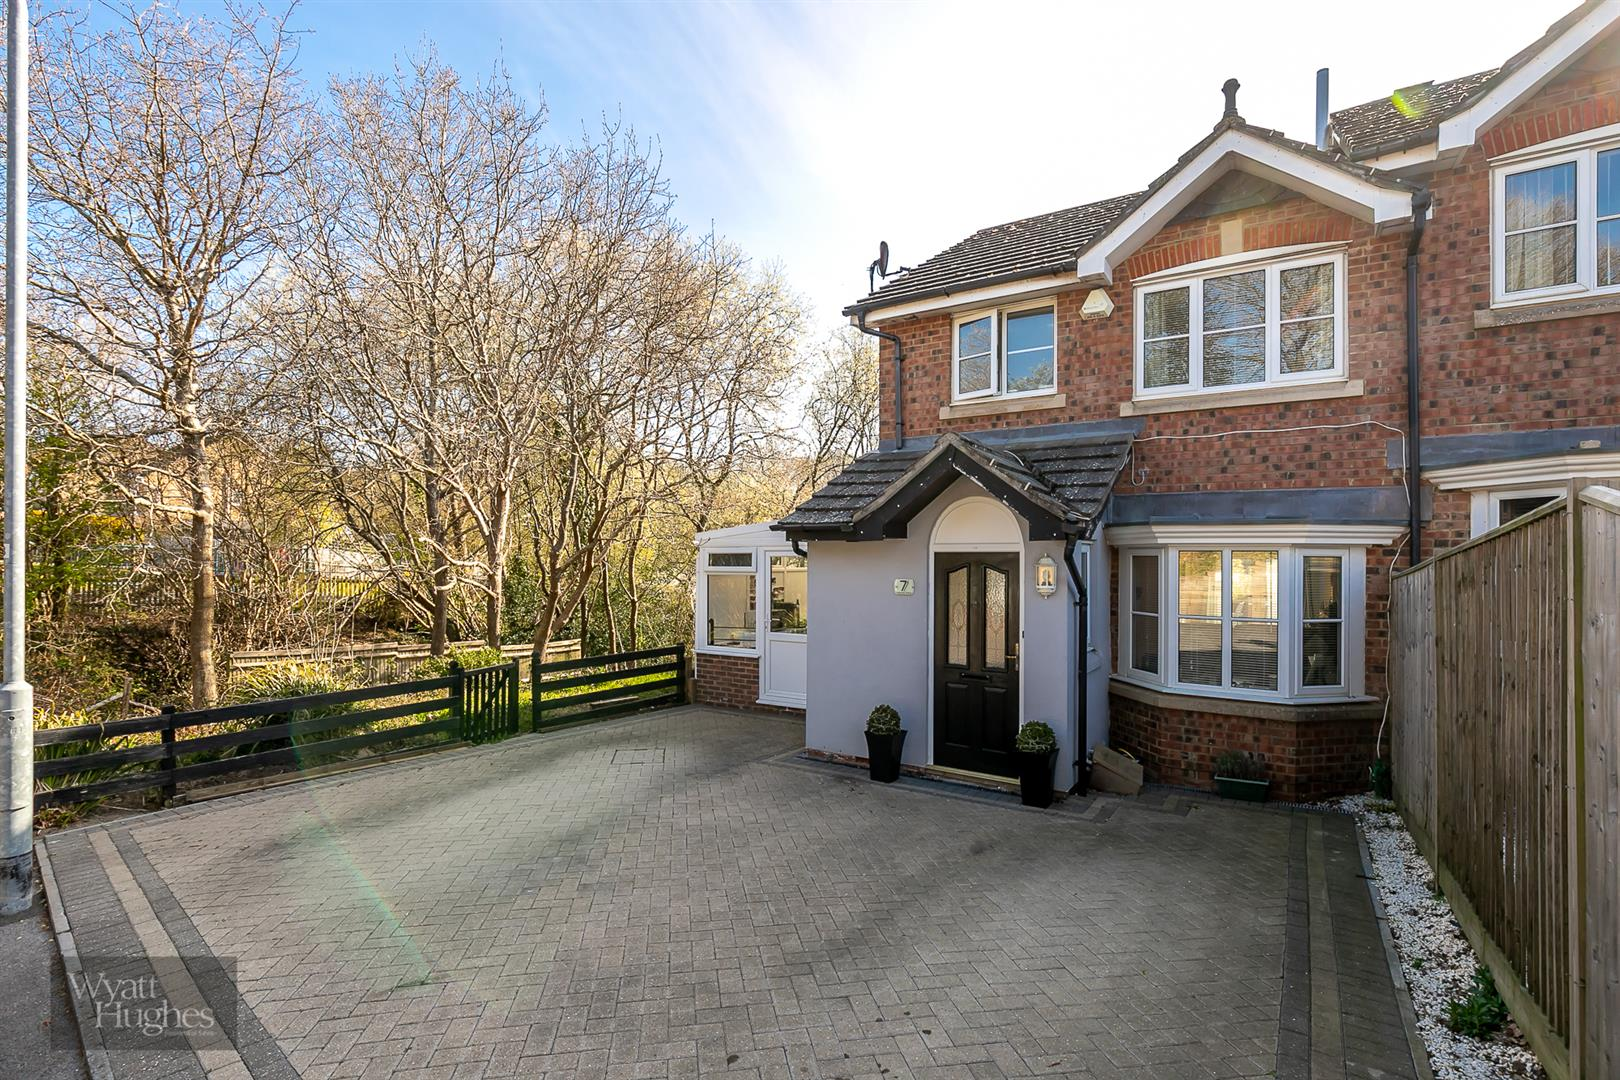 3 bed house for sale in Warwick Place, St. Leonards-On-Sea, TN38